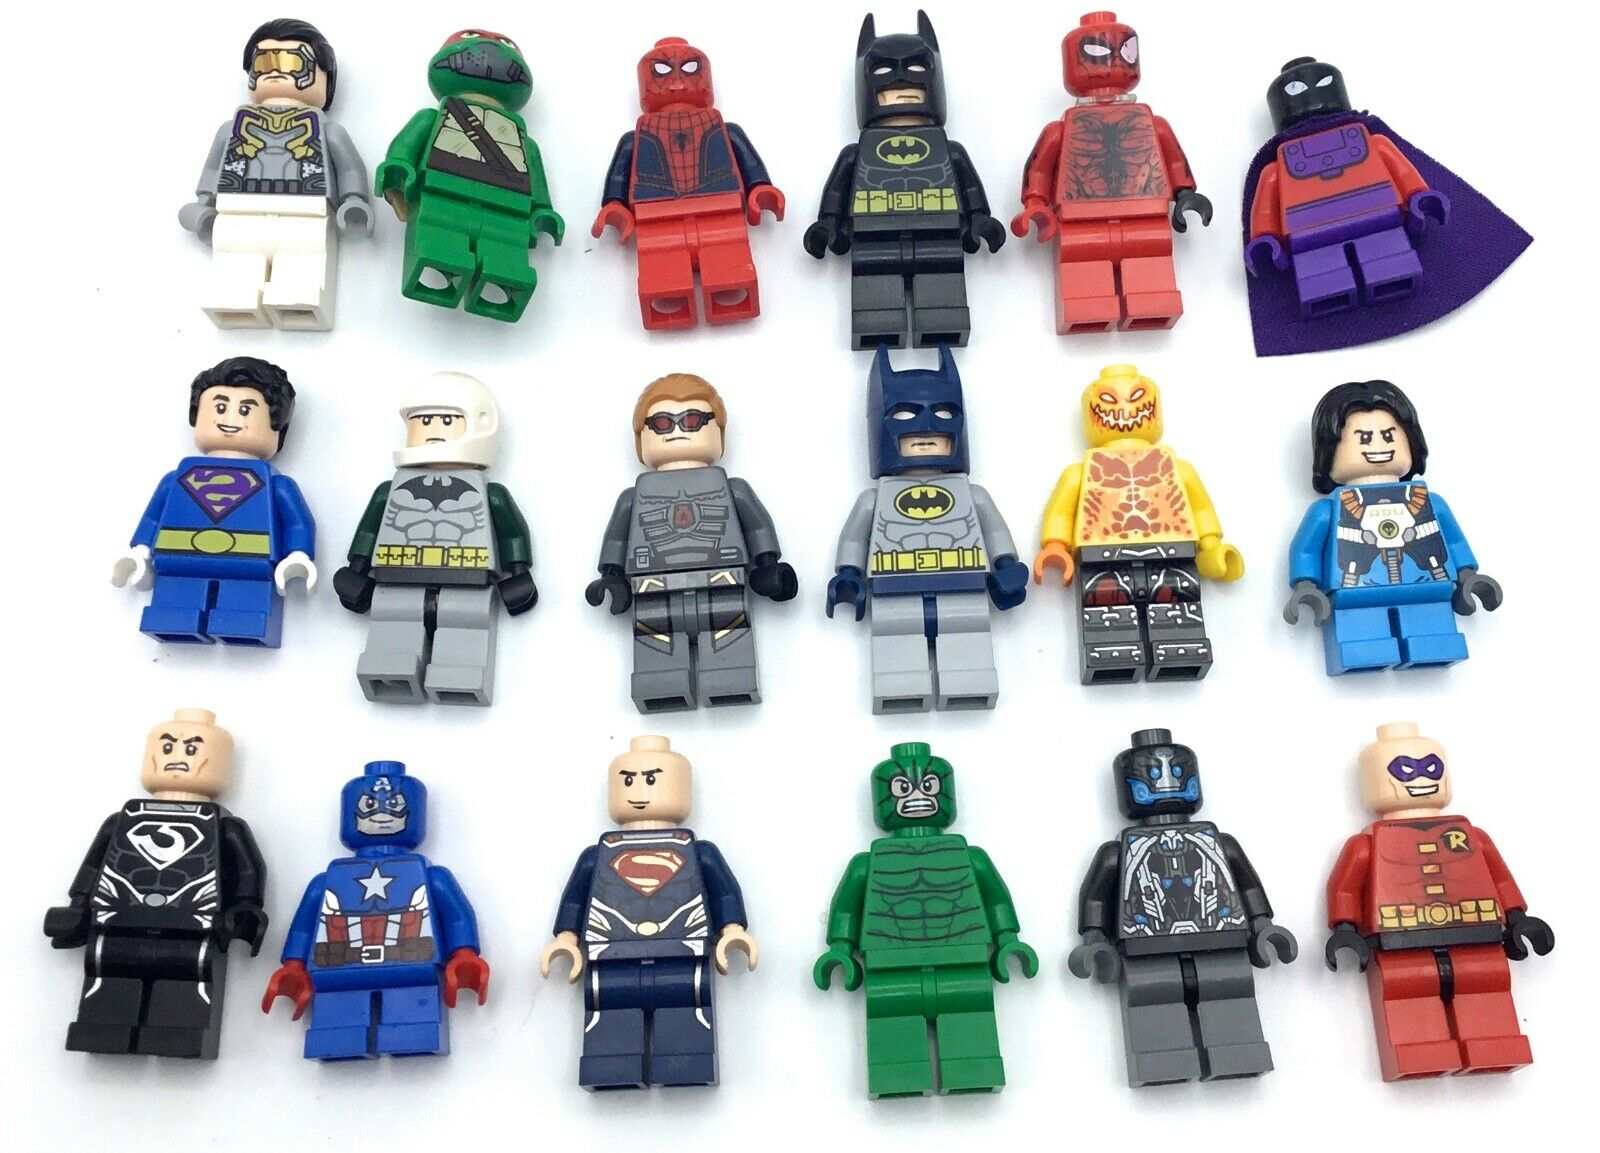 LEGO HUGE LOT OF 18 SUPERHERO MINIFIGURES MARVEL DC BATMAN TMNT HEROES MIX RARE